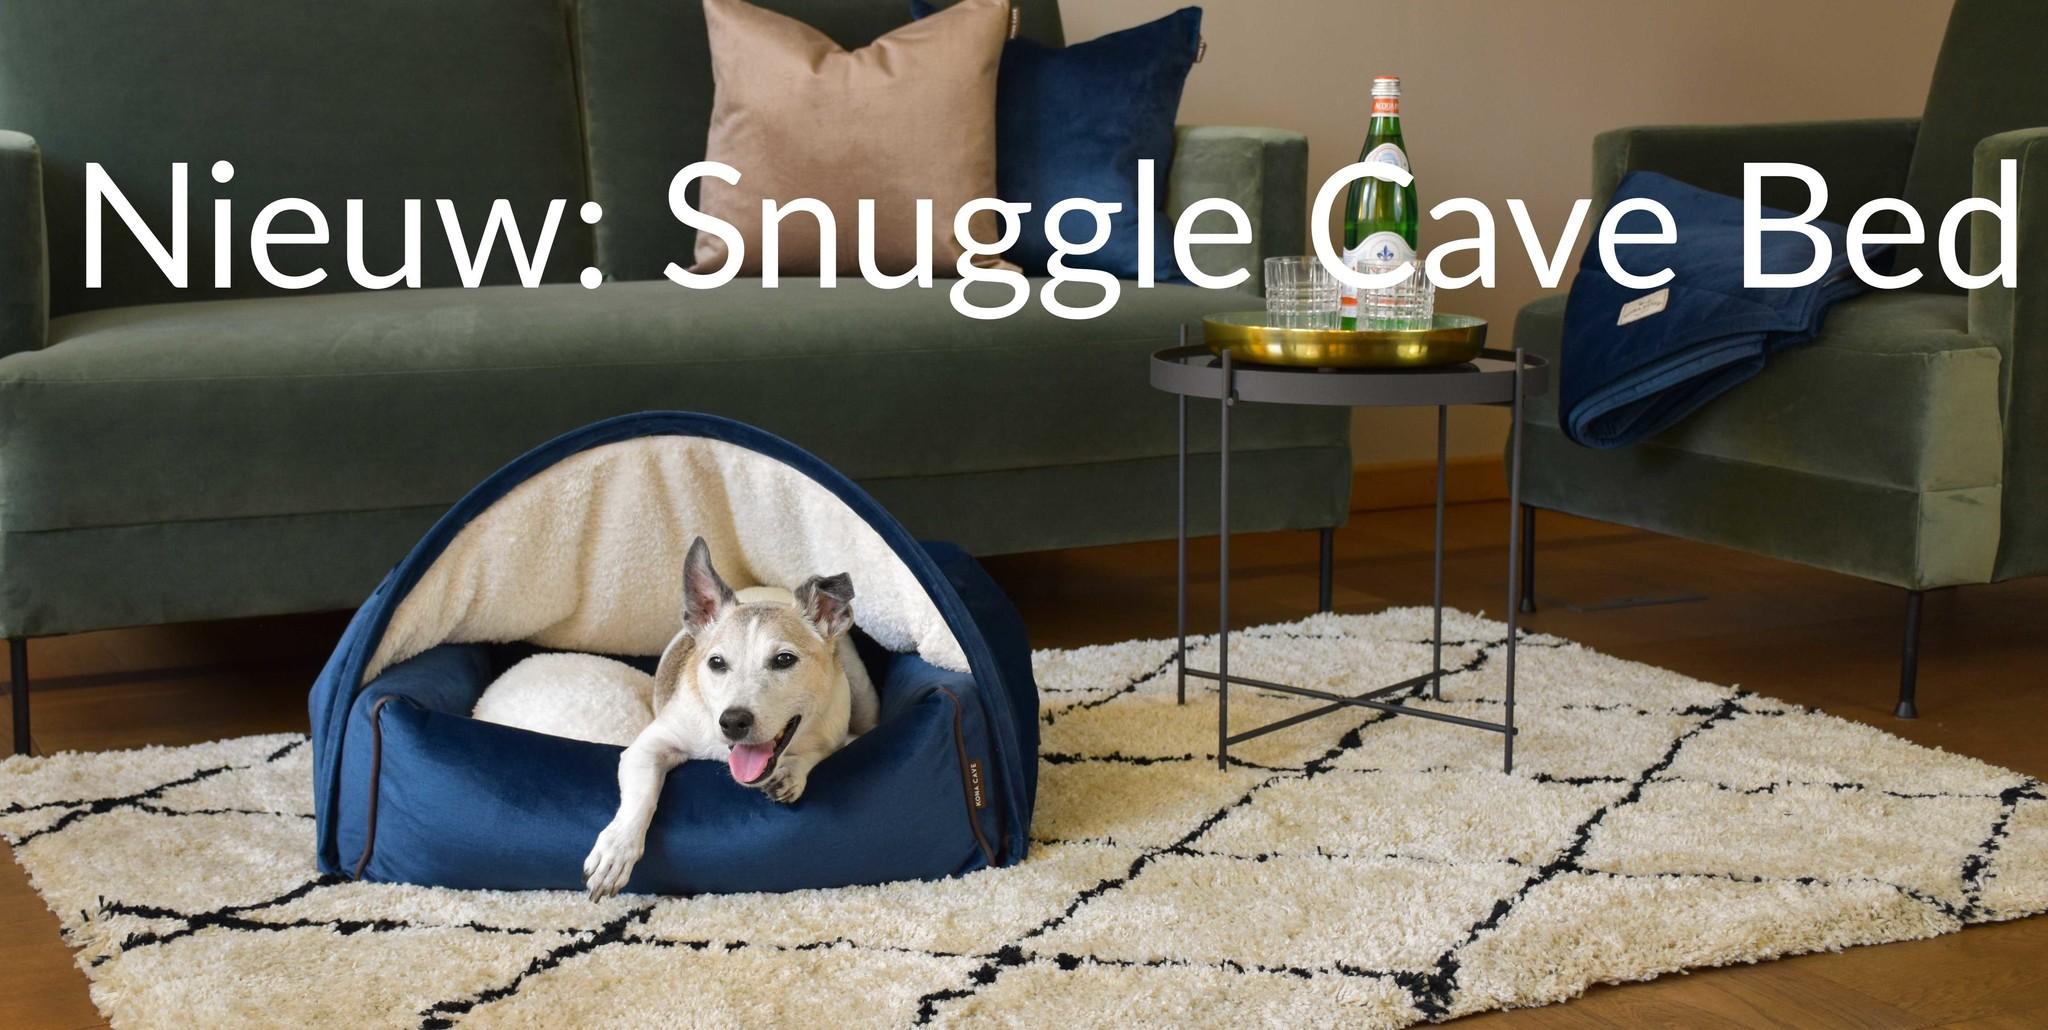 Snuggle Cave Bed